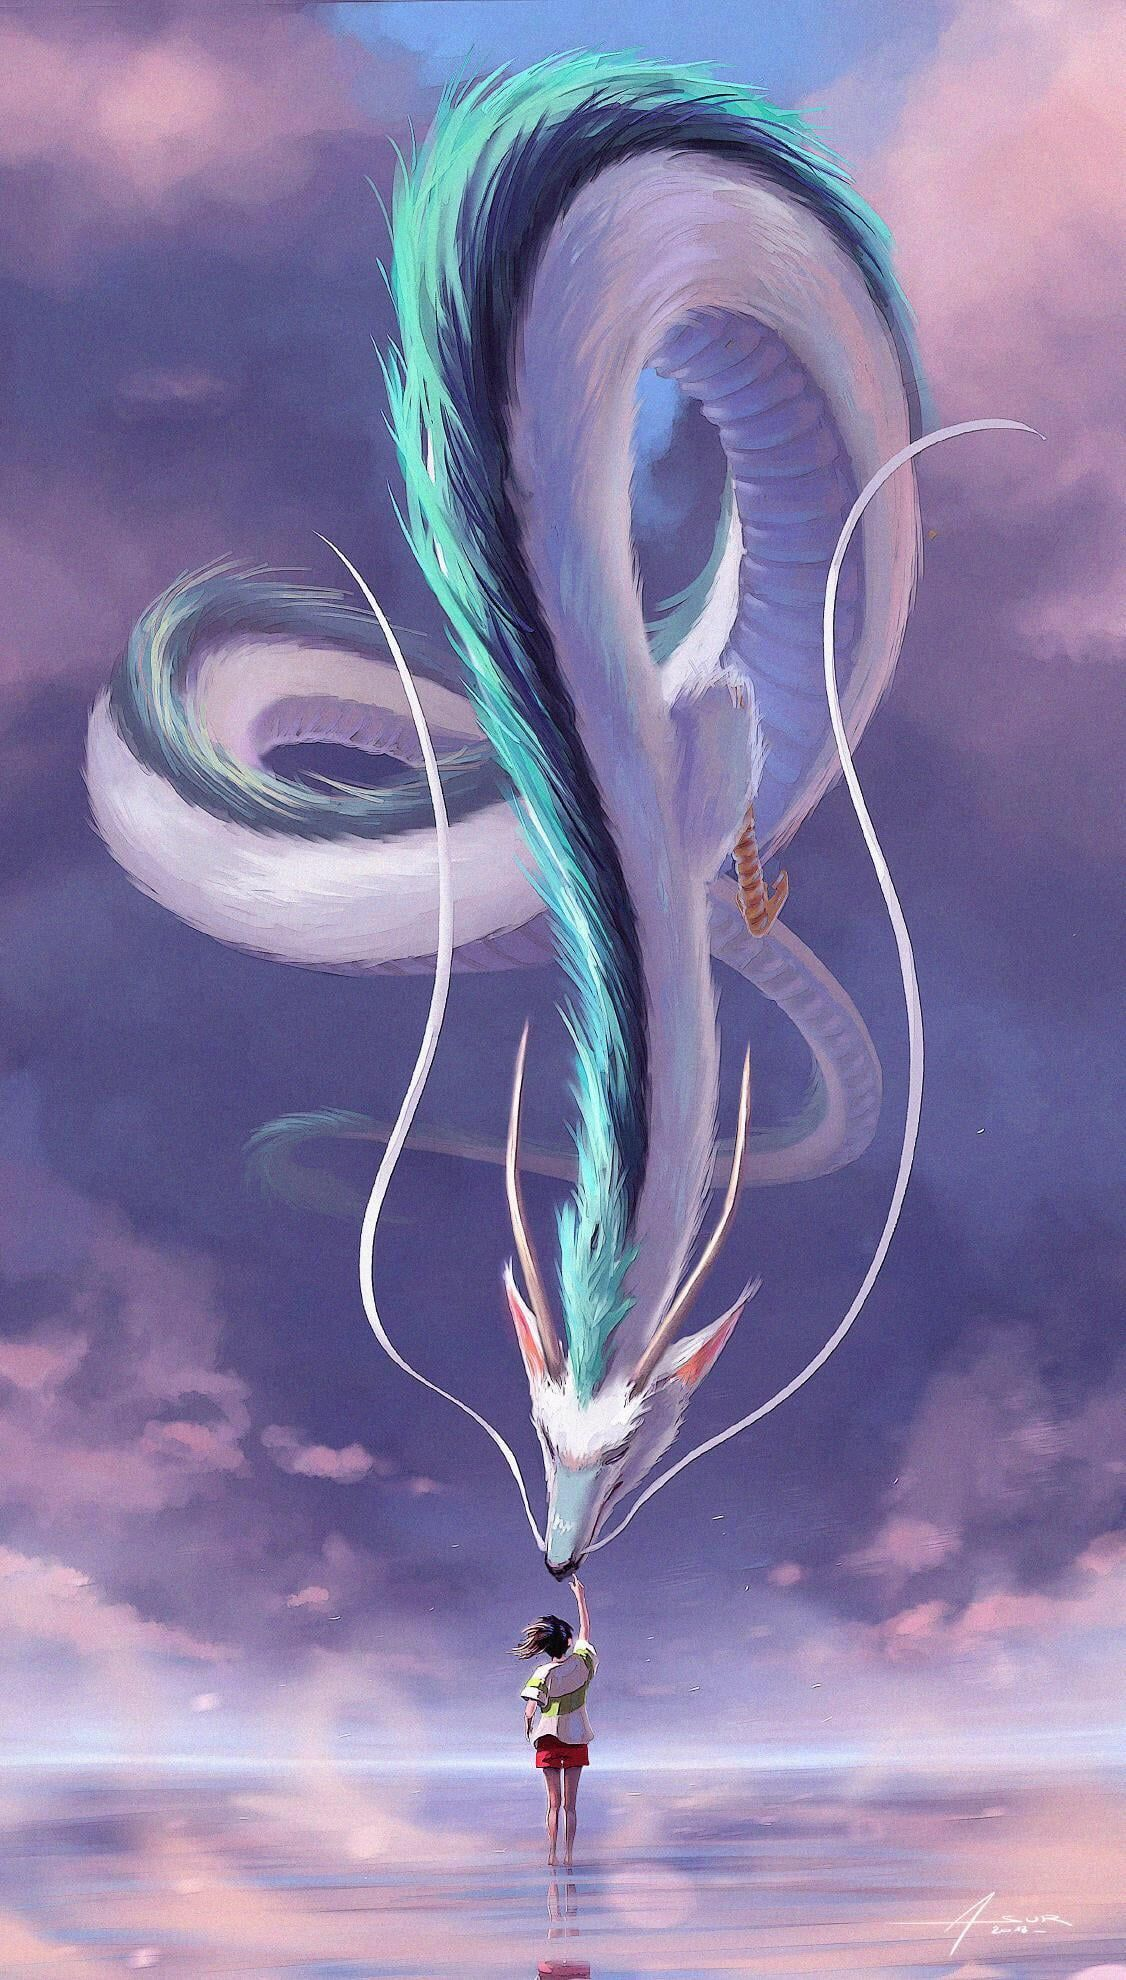 Dragon Children Illustration Digital Painting Clouds Haku Chihiro Spirited Away Anime Anime Girls Sky Creatur In 2020 Studio Ghibli Art Ghibli Art Fantasy Art